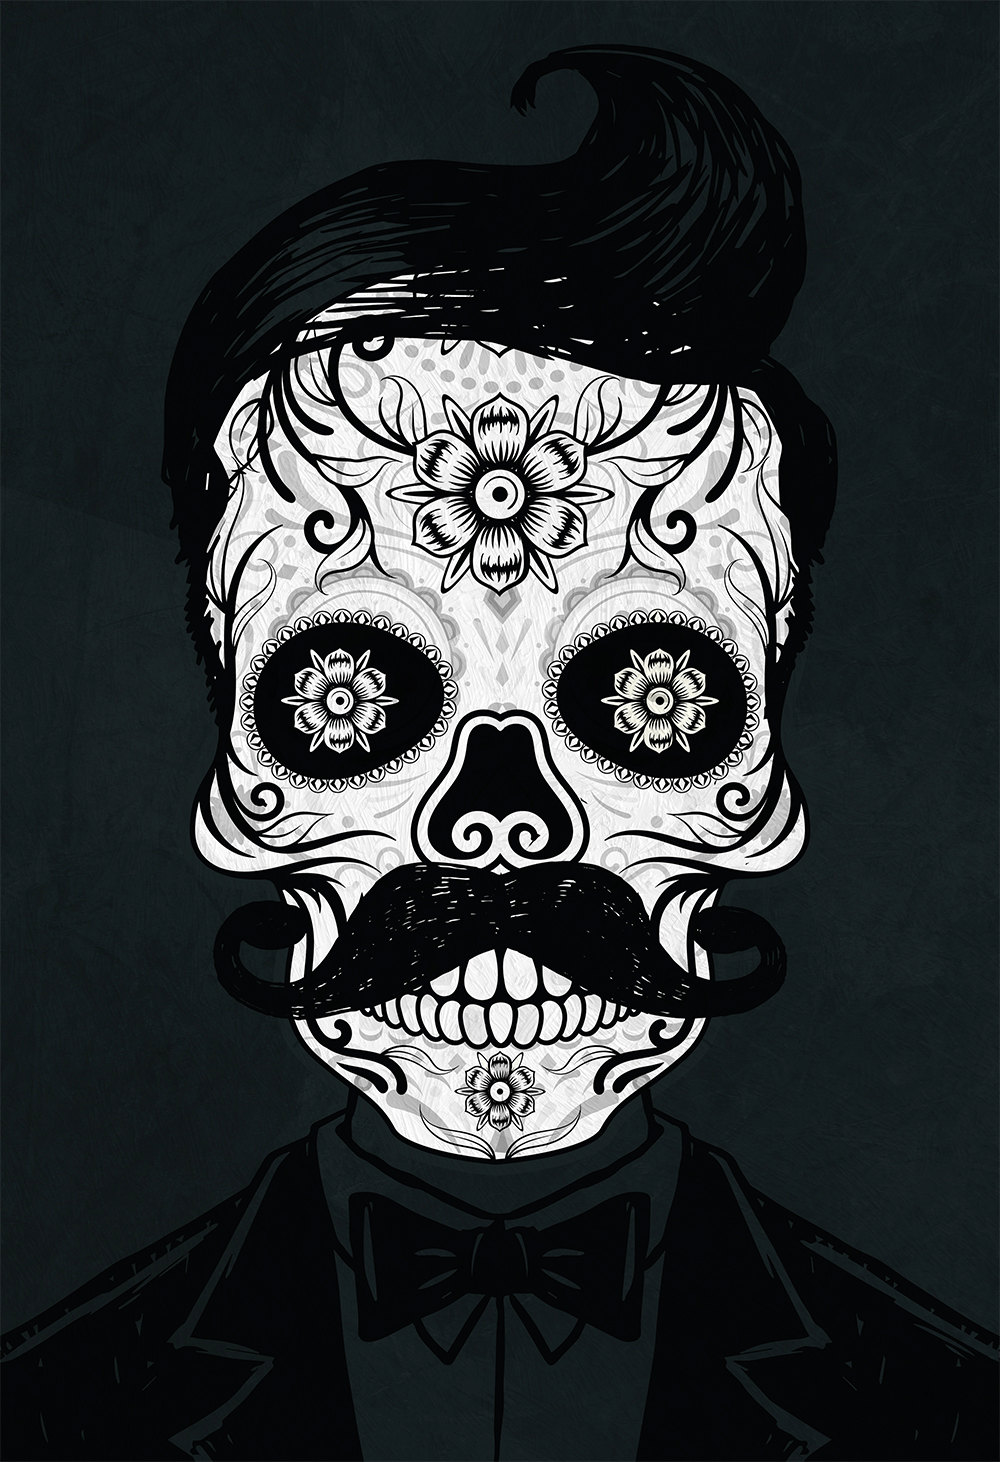 dia de los muertos mexican retro hipster sugar skull illustration